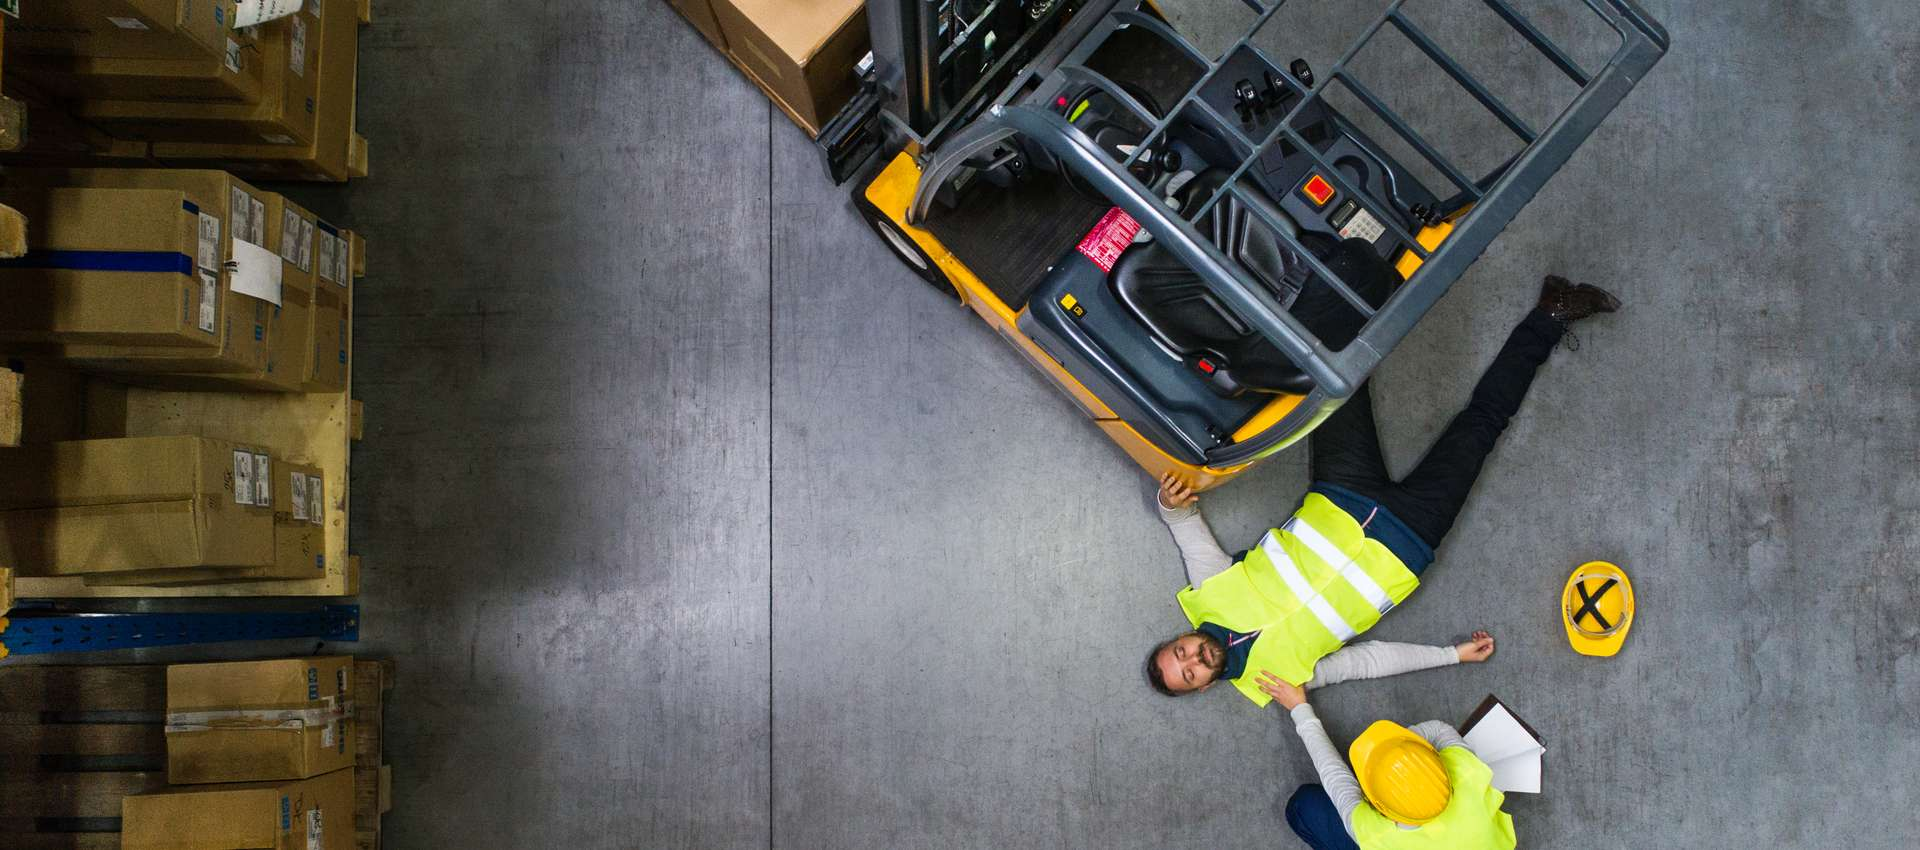 Warehouse Safety: 10 Tips to Keep Your Employees Safe